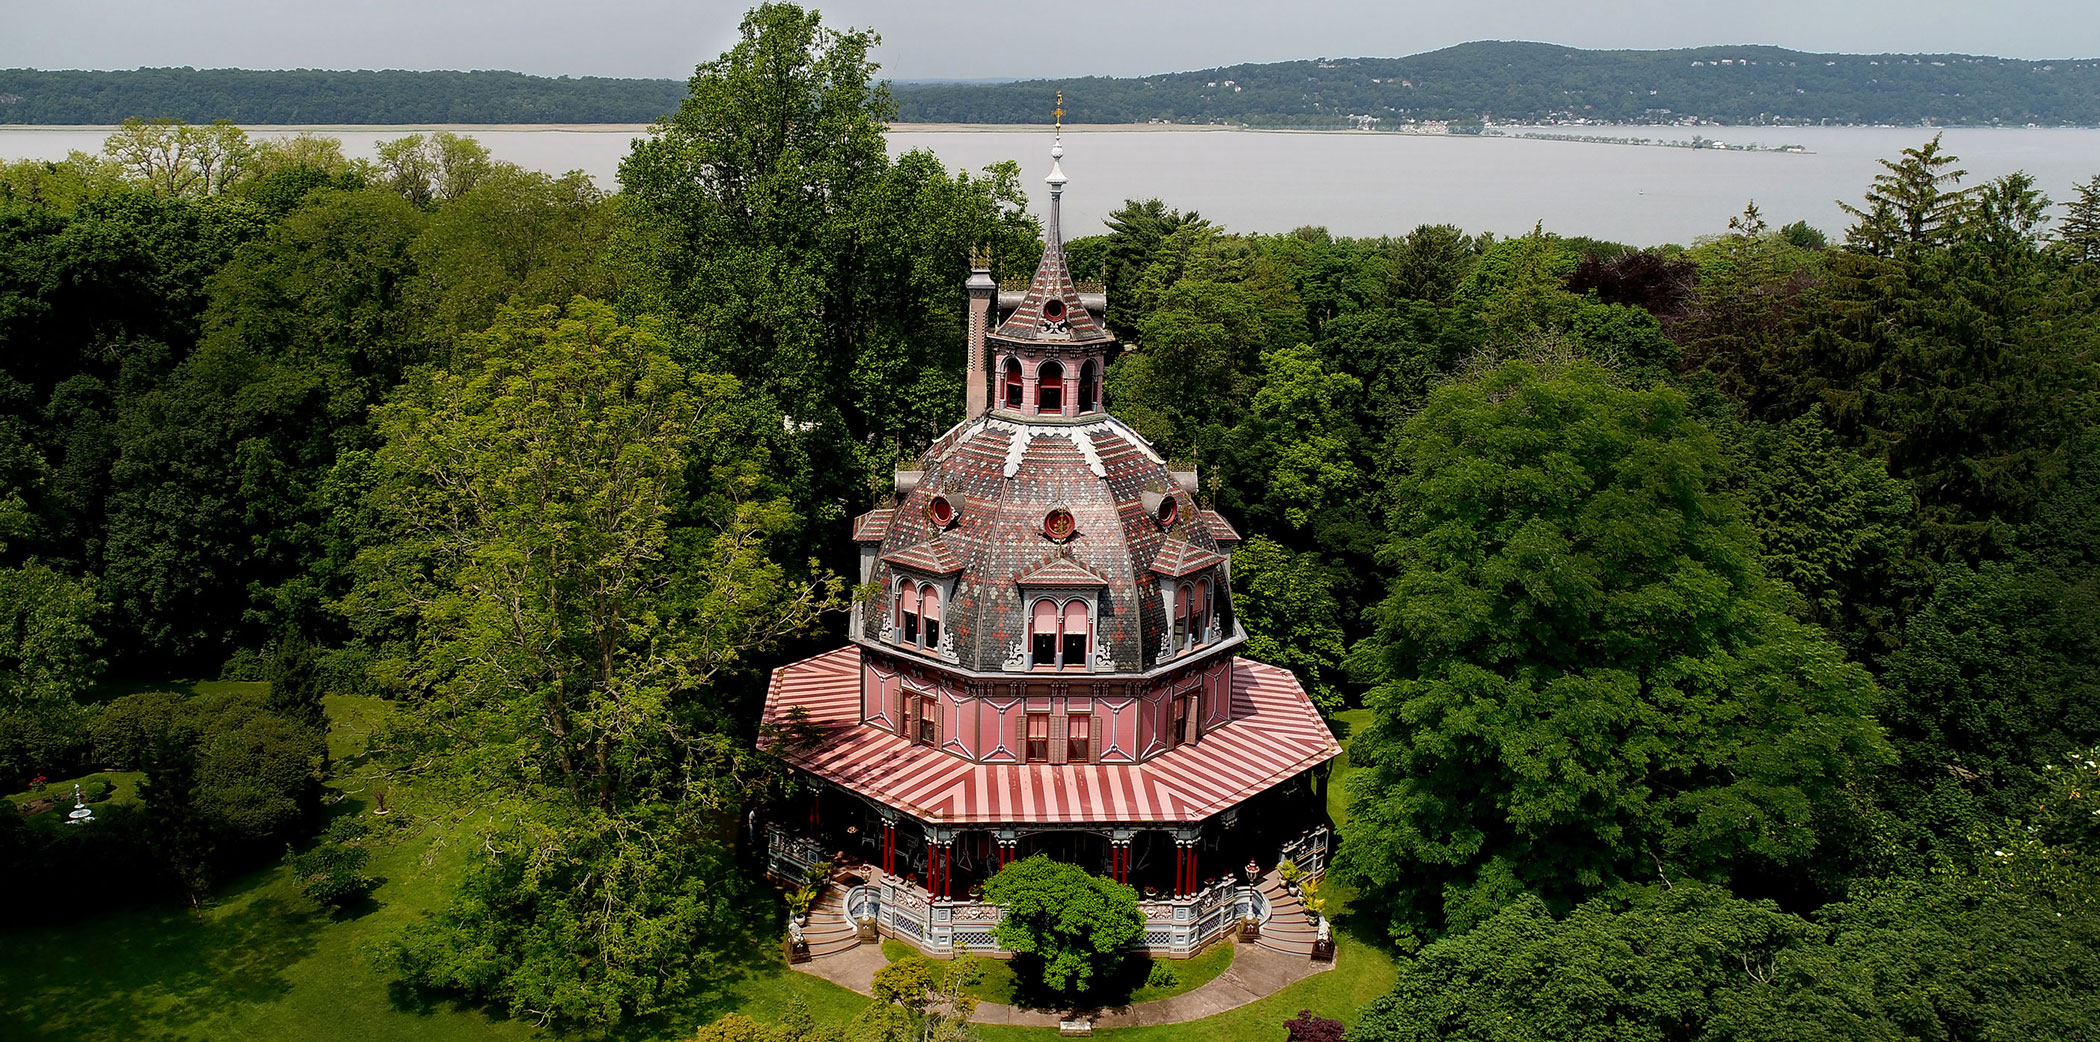 Tickets for The Armour-Stiner Octagon House: A Guided Tour in Irvington from ShowClix